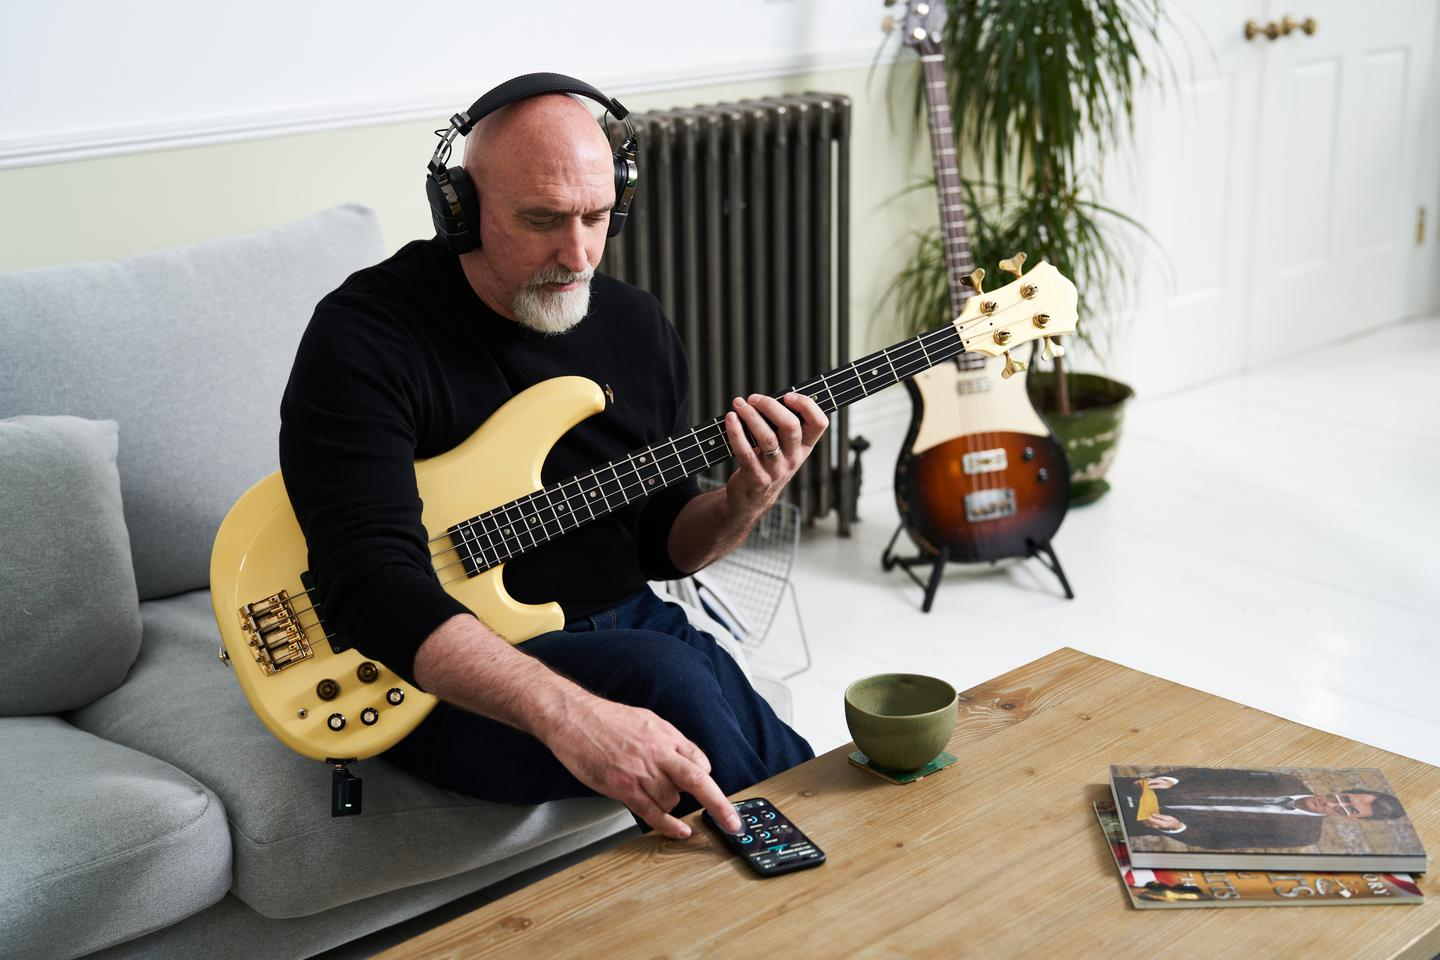 Bass players can practice solo, get rhythmic with onboard acoustic drum patterns, or jam with music streamed from a smartphone